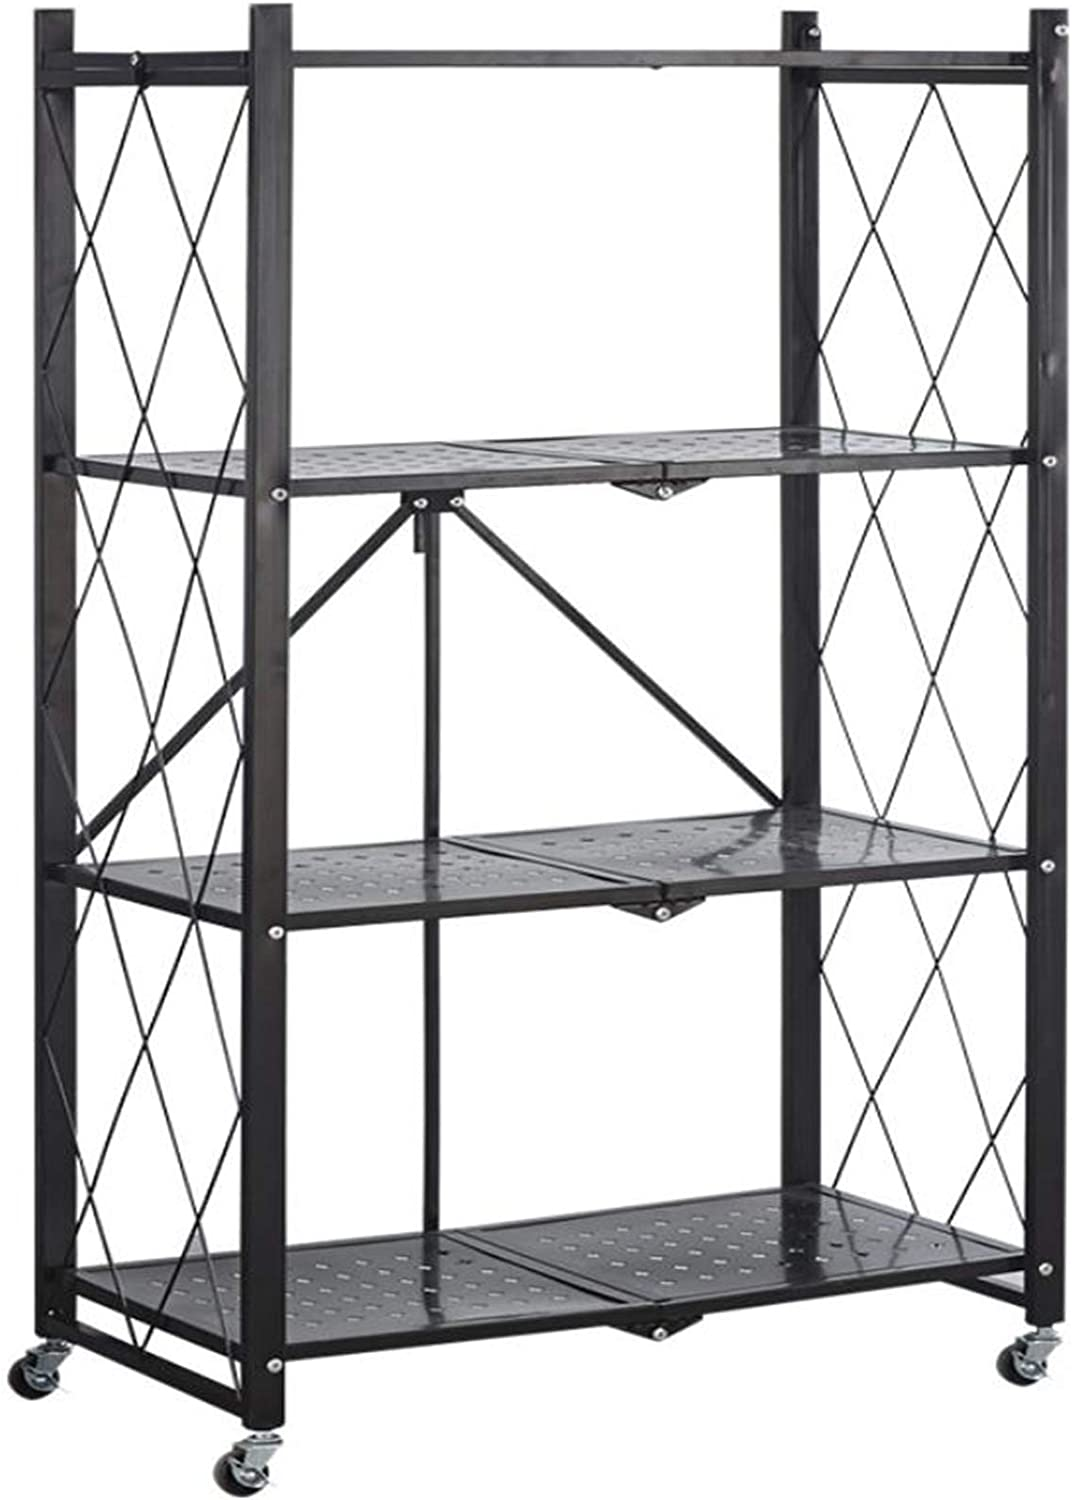 aasdf 3-Tier Rolling Utility Cart Movable Storage Organizer Shelves with Wheels Multifunctional Service Cart for Restaurant Foodservice Office Warehouse